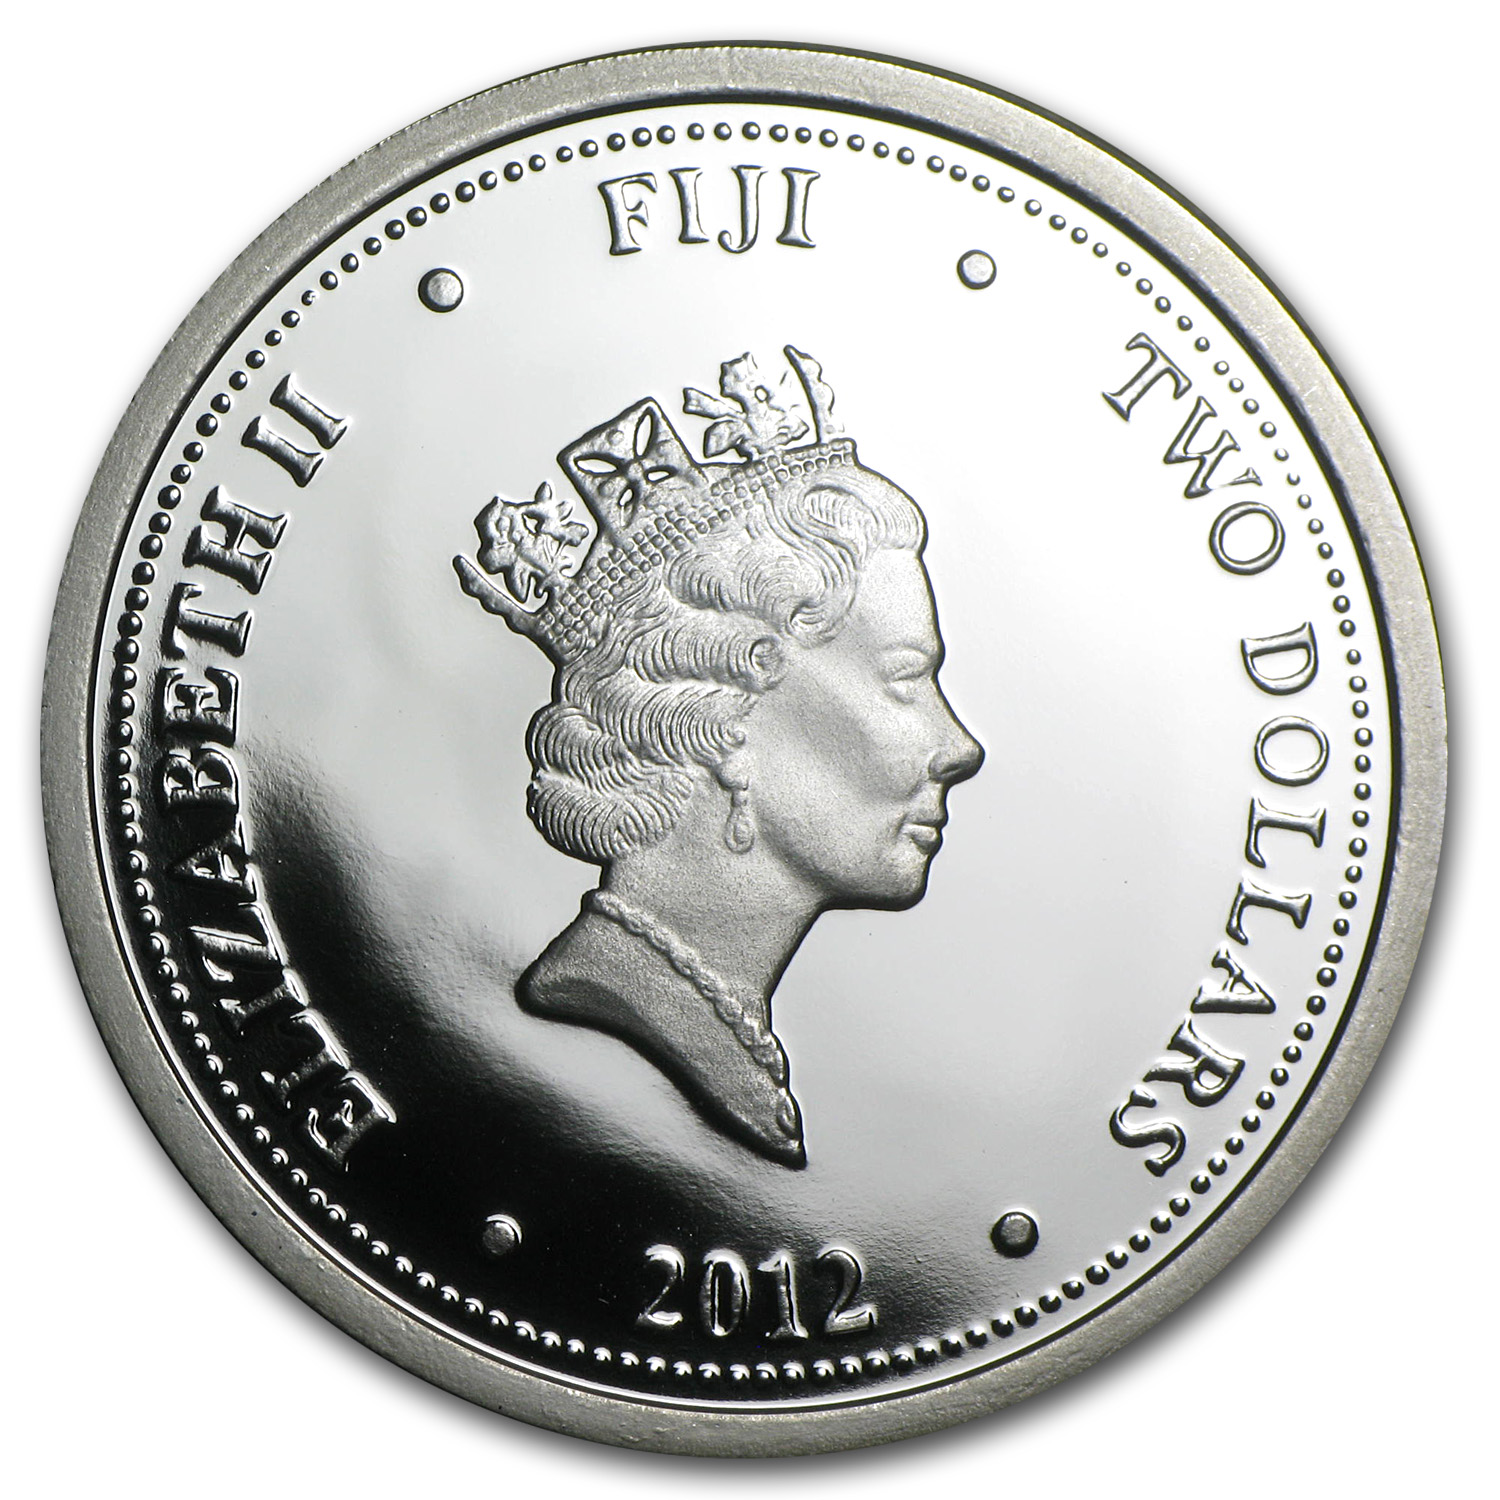 2012 1 oz Silver Fiji $2 Taku & Baby Proof (Gilded, In Water Box)